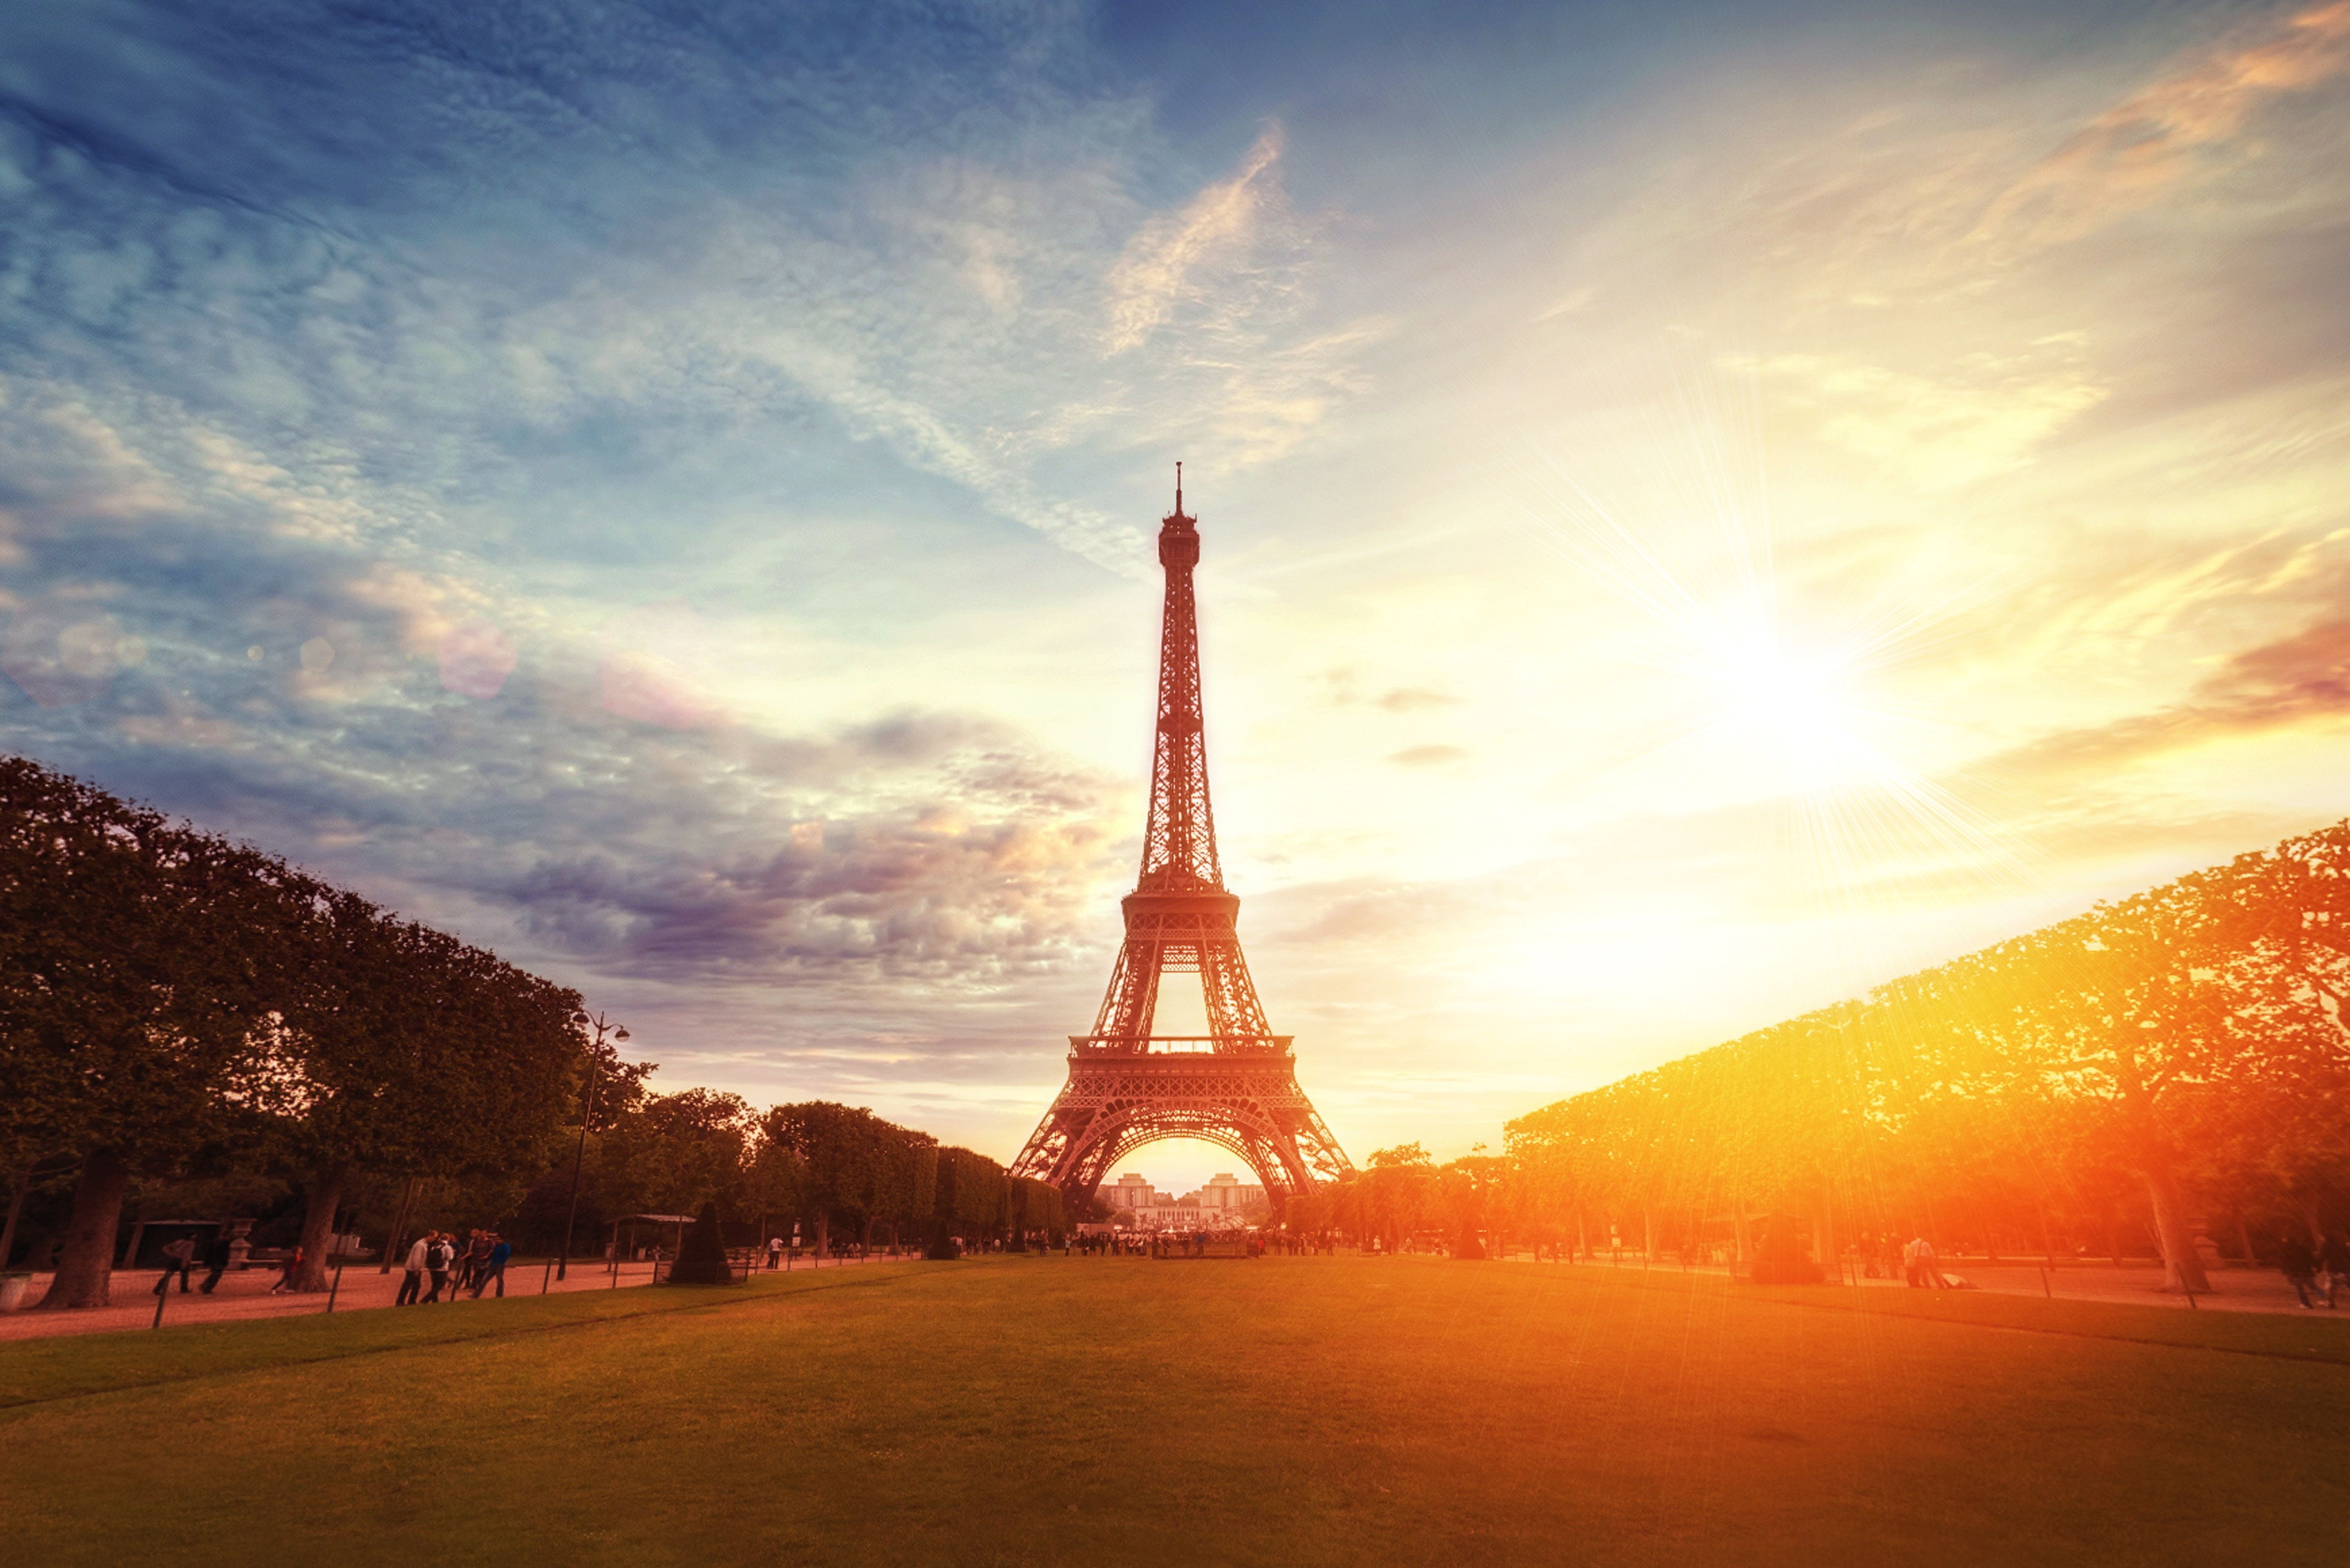 Perkbox expands into Europe, now offering its employee benefit programme in France